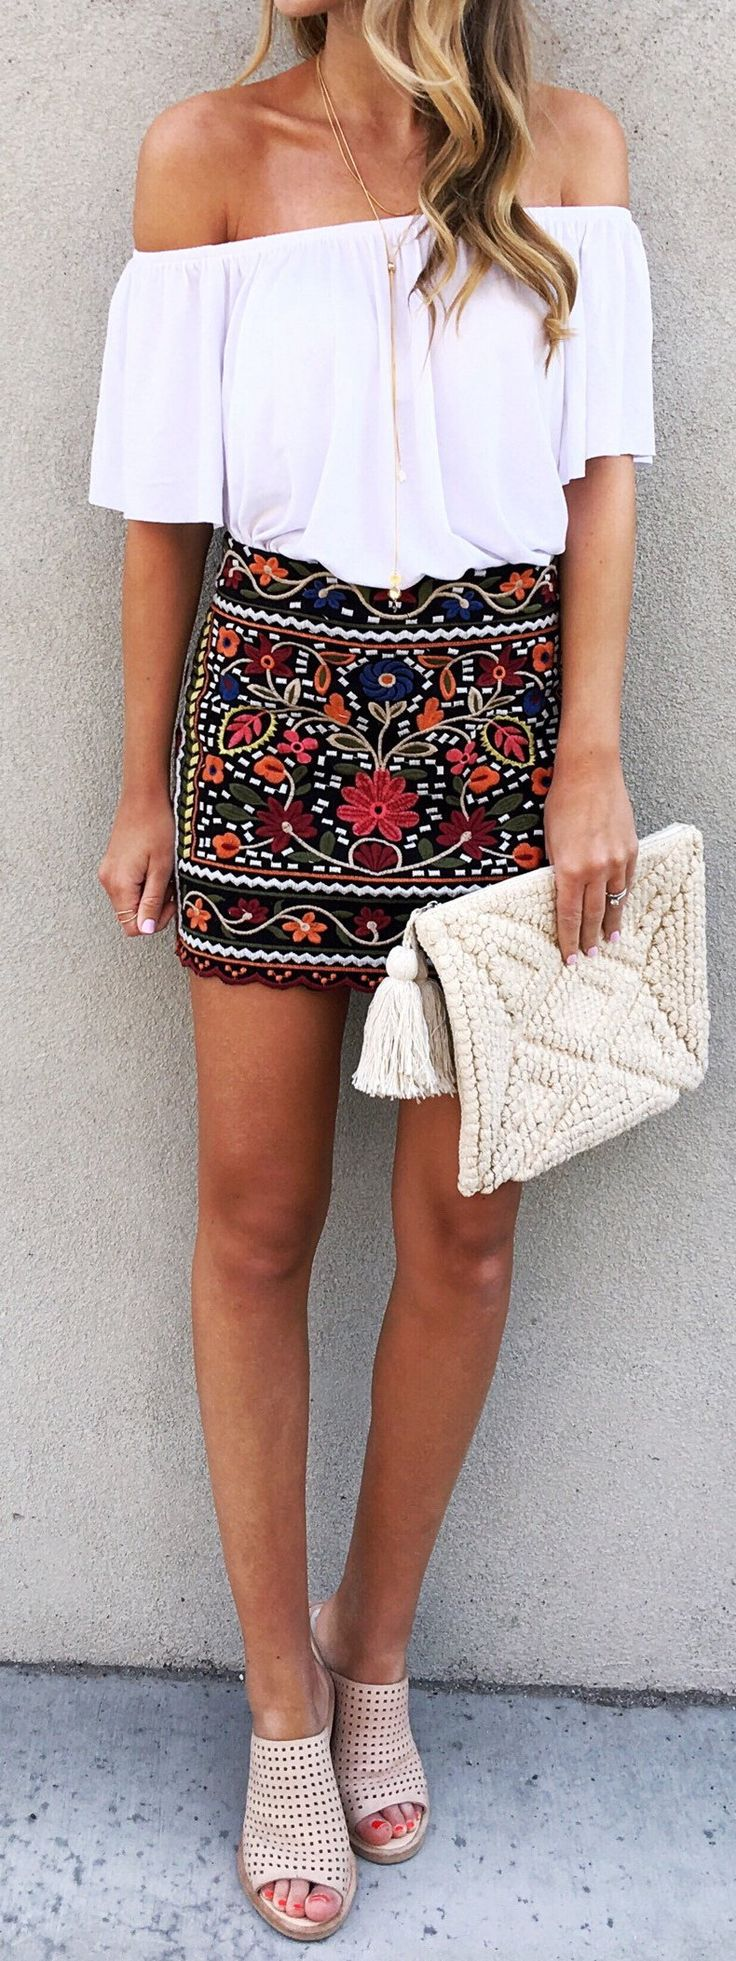 40 Insanely Cute Summer Outfits